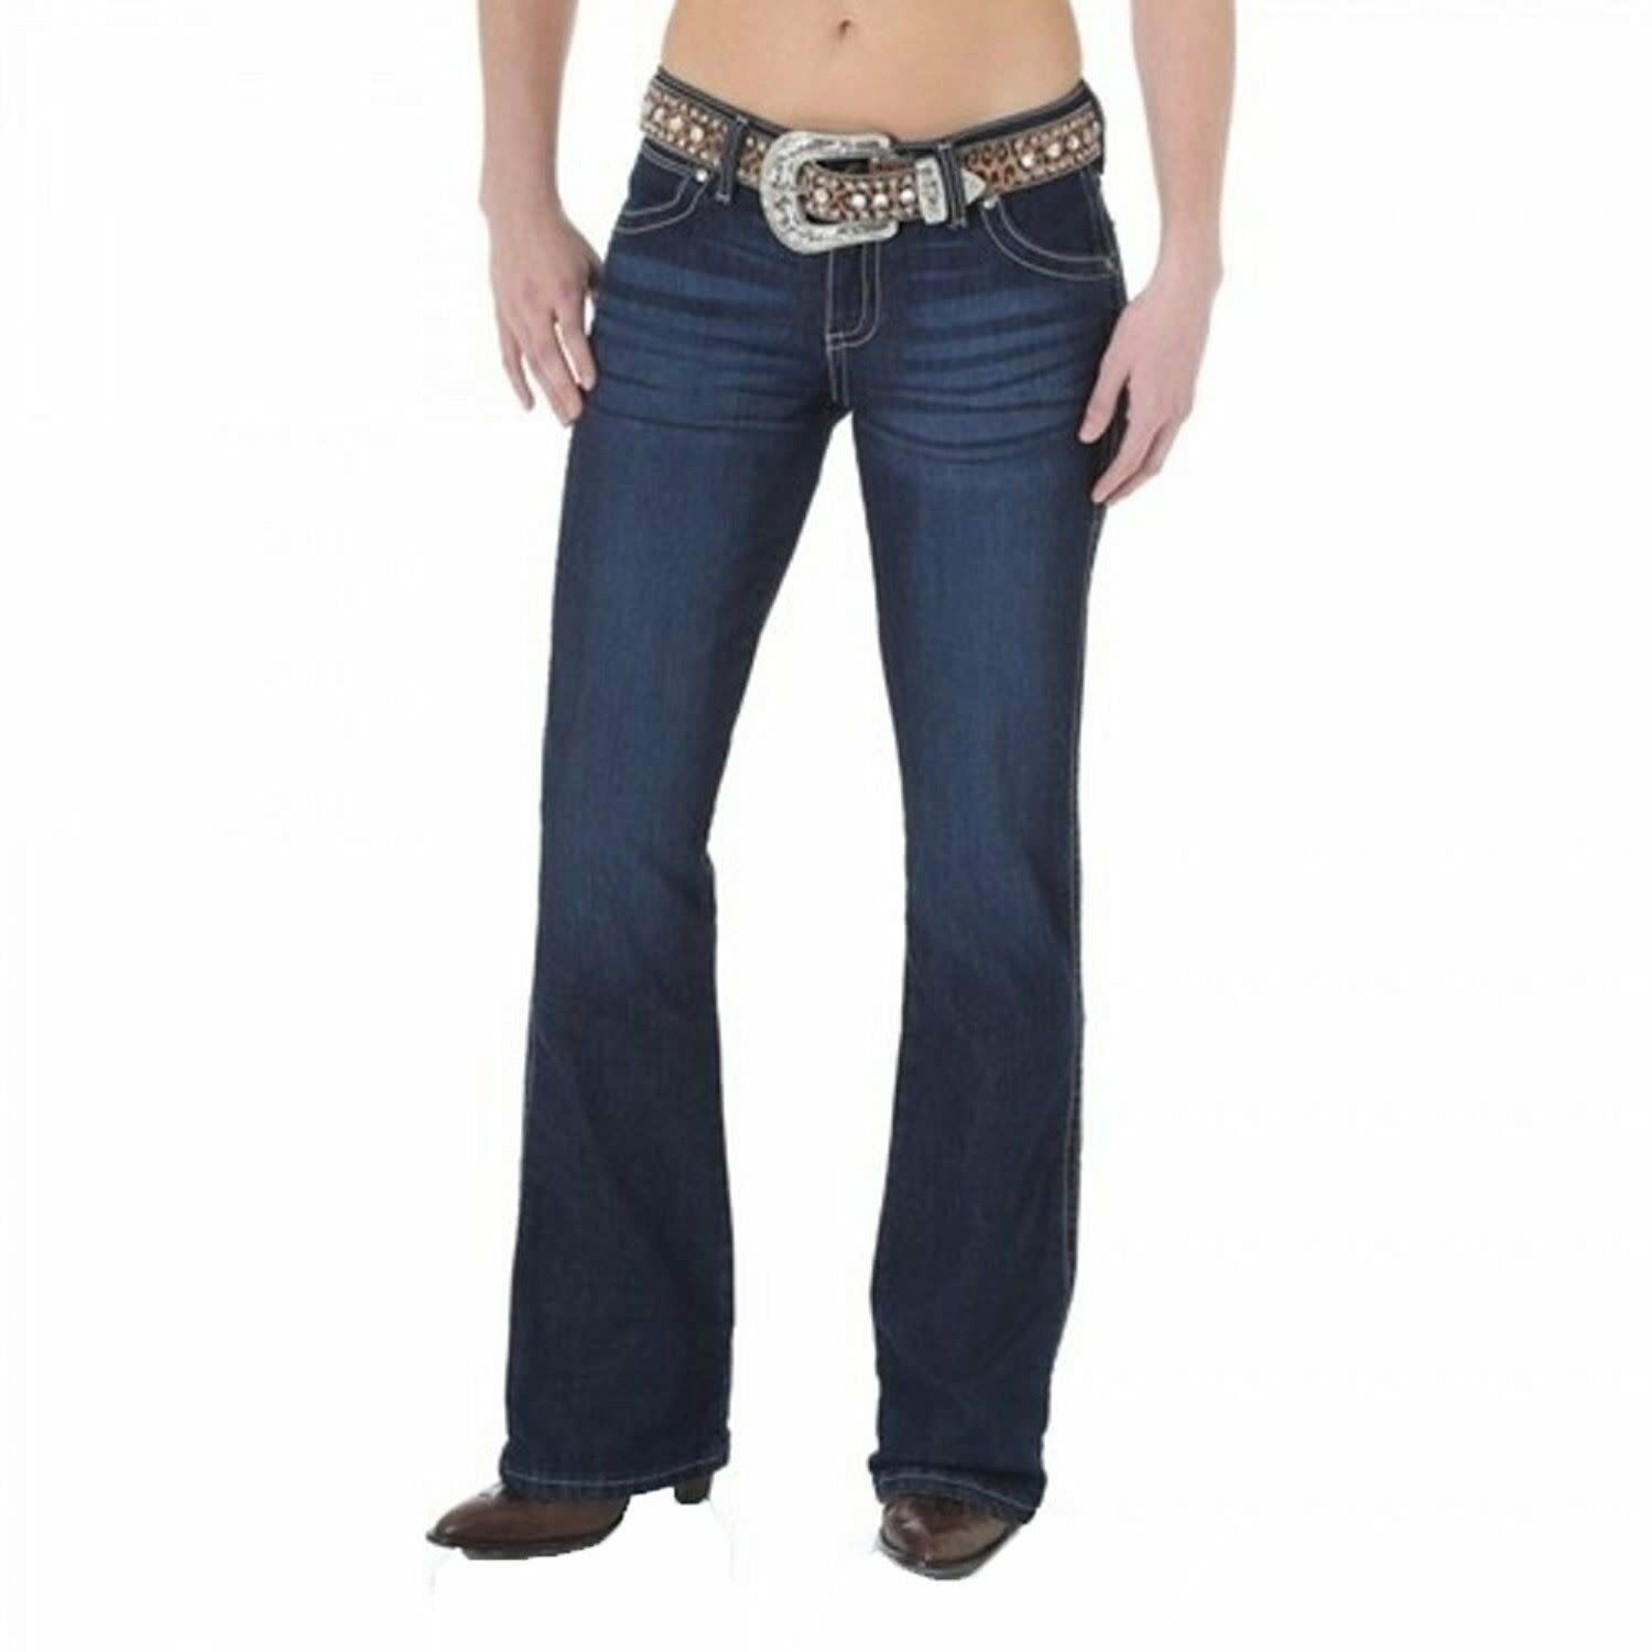 Wrangler Mae Boot Cut Low Rise Premium Patch Jeans 09MWZMR